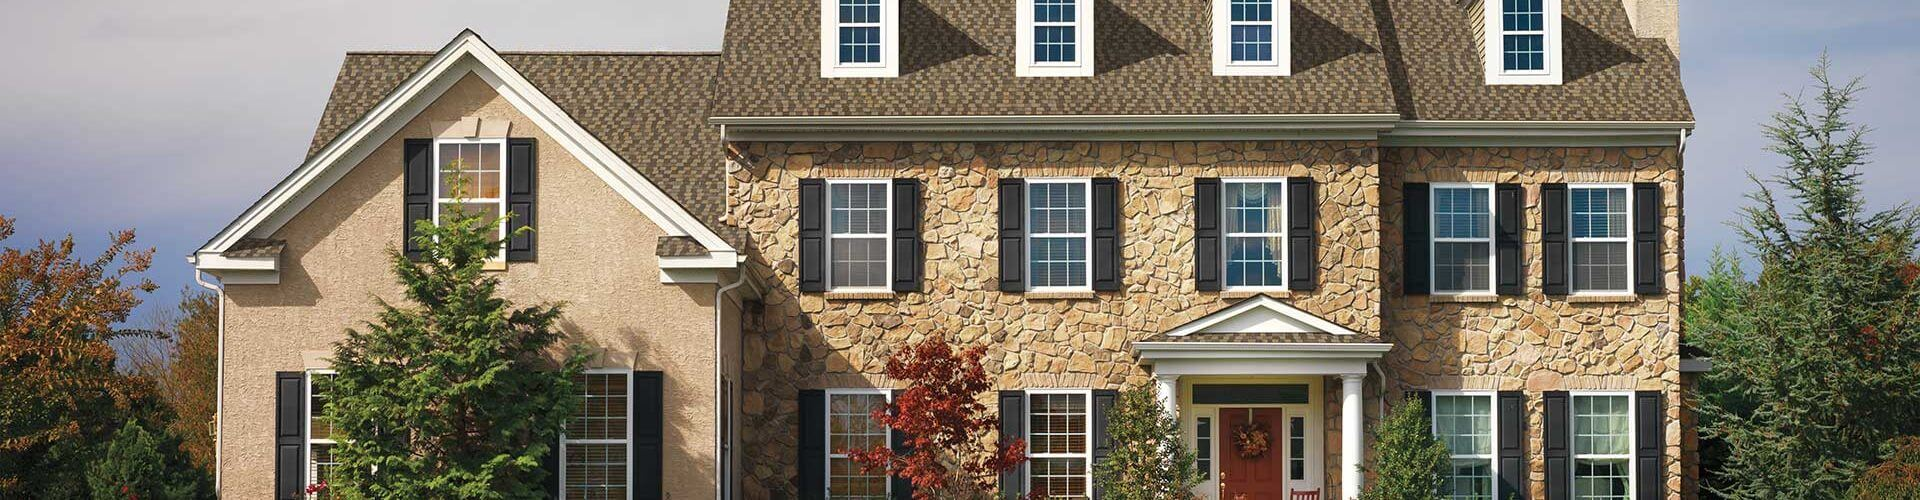 Roofing Services In Glastonbury CT